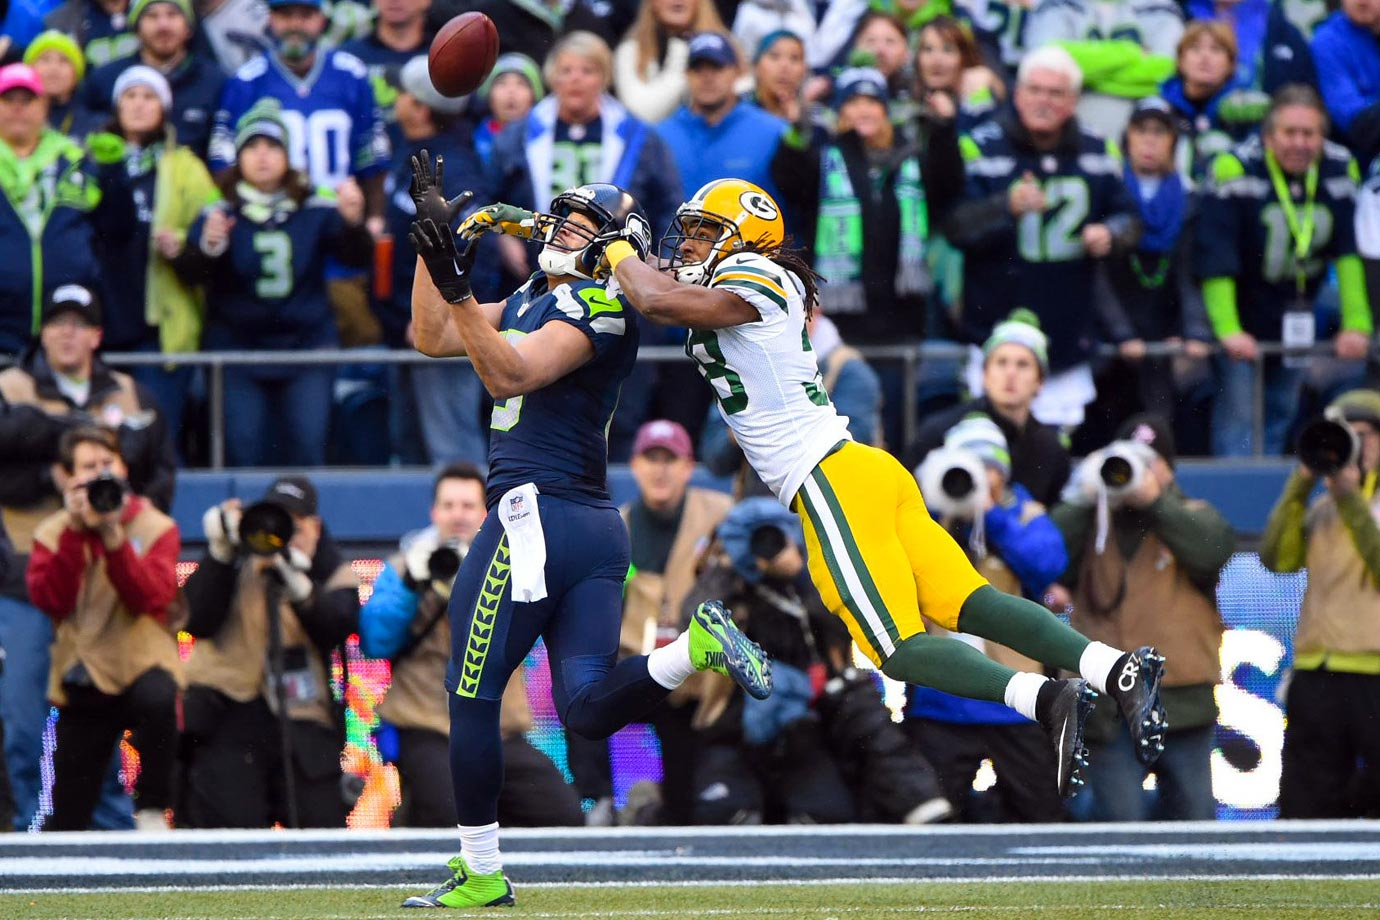 In an instant classic, Seattle clinched a Super Bowl berth with a 28-22 win over Green Bay in the NFC Championship. Trailing for most of the game, the Seahawks scored 15points in the final two minutes, aided by a two-point conversion and onside kick recovery. The Packers had to make their own comeback to send the game into overtime, but Seattle ended the contest on the first drive with a 35-yard strike from Russell Wilson to Jermaine Kearse.